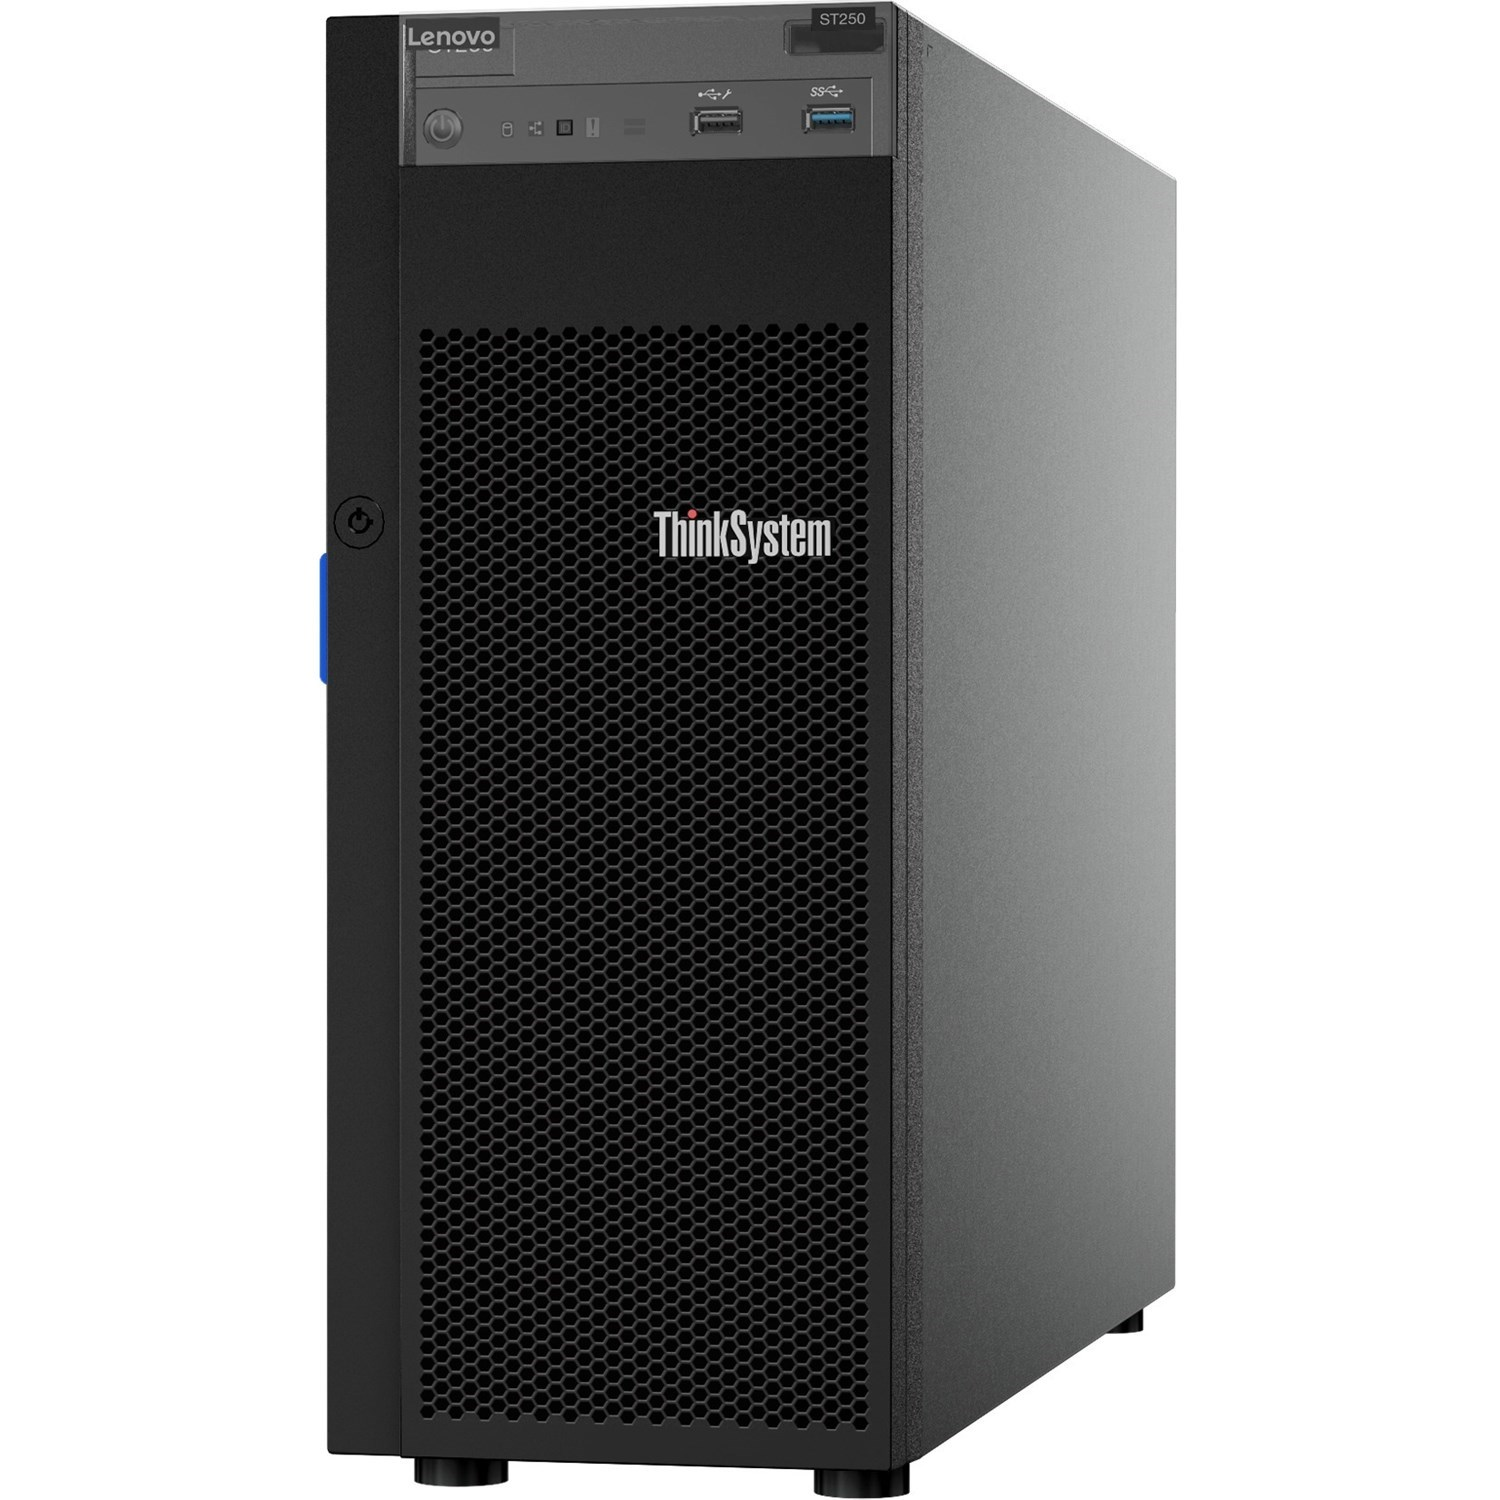 Tower/Lenovo: Lenovo, ST250, With, E-2144G, 4, core, CPU, 16GB, RAM, and, 4, LFF, bays,